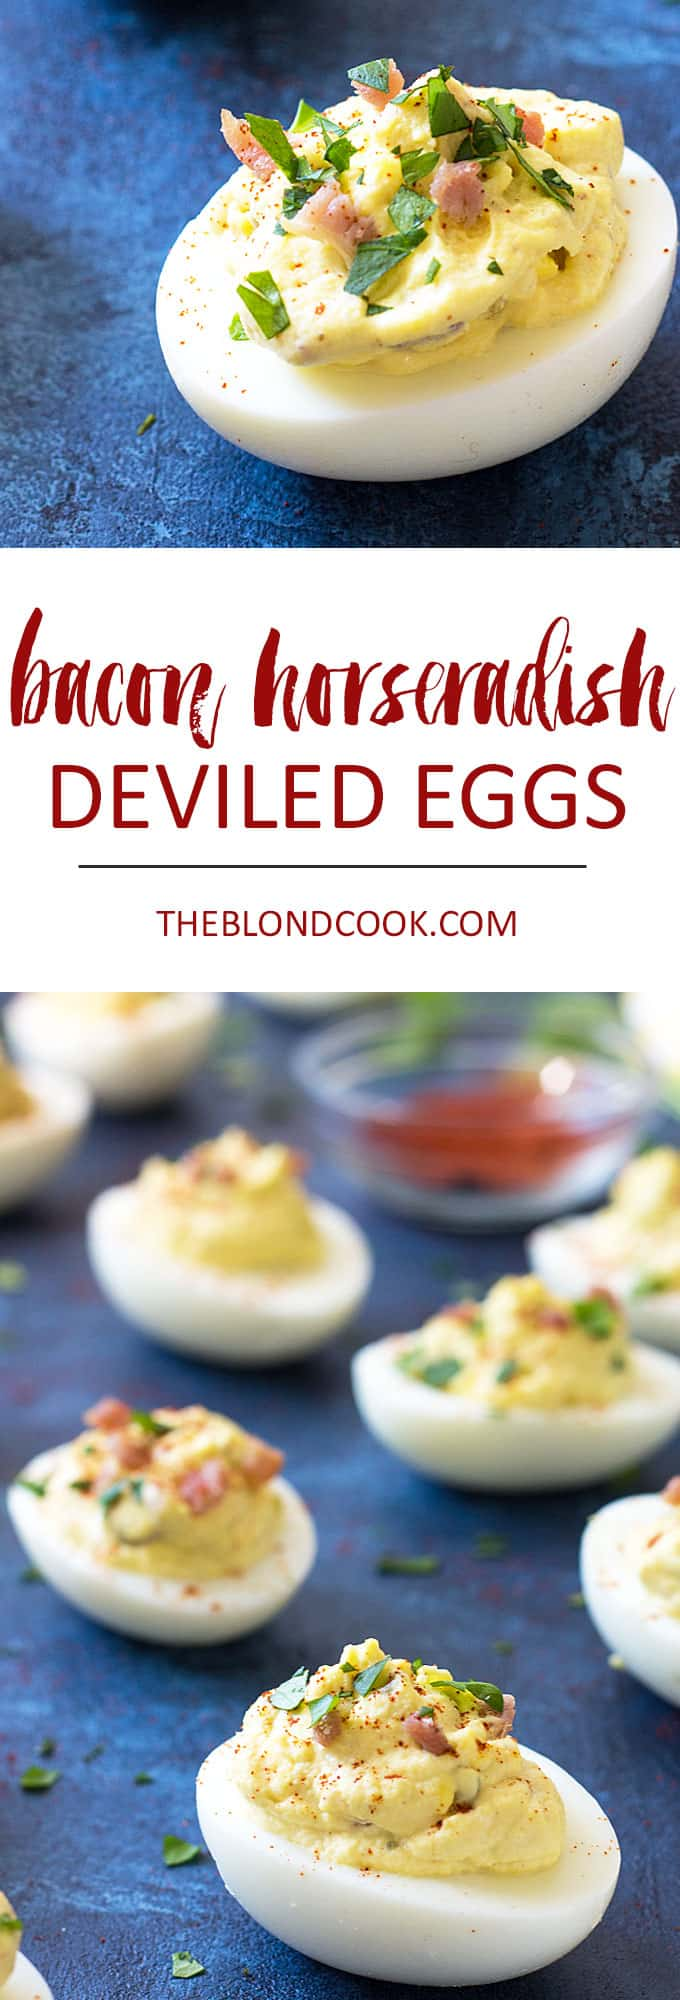 Two images of deviled eggs.  Text in center says bacon horseradish deviled eggs.